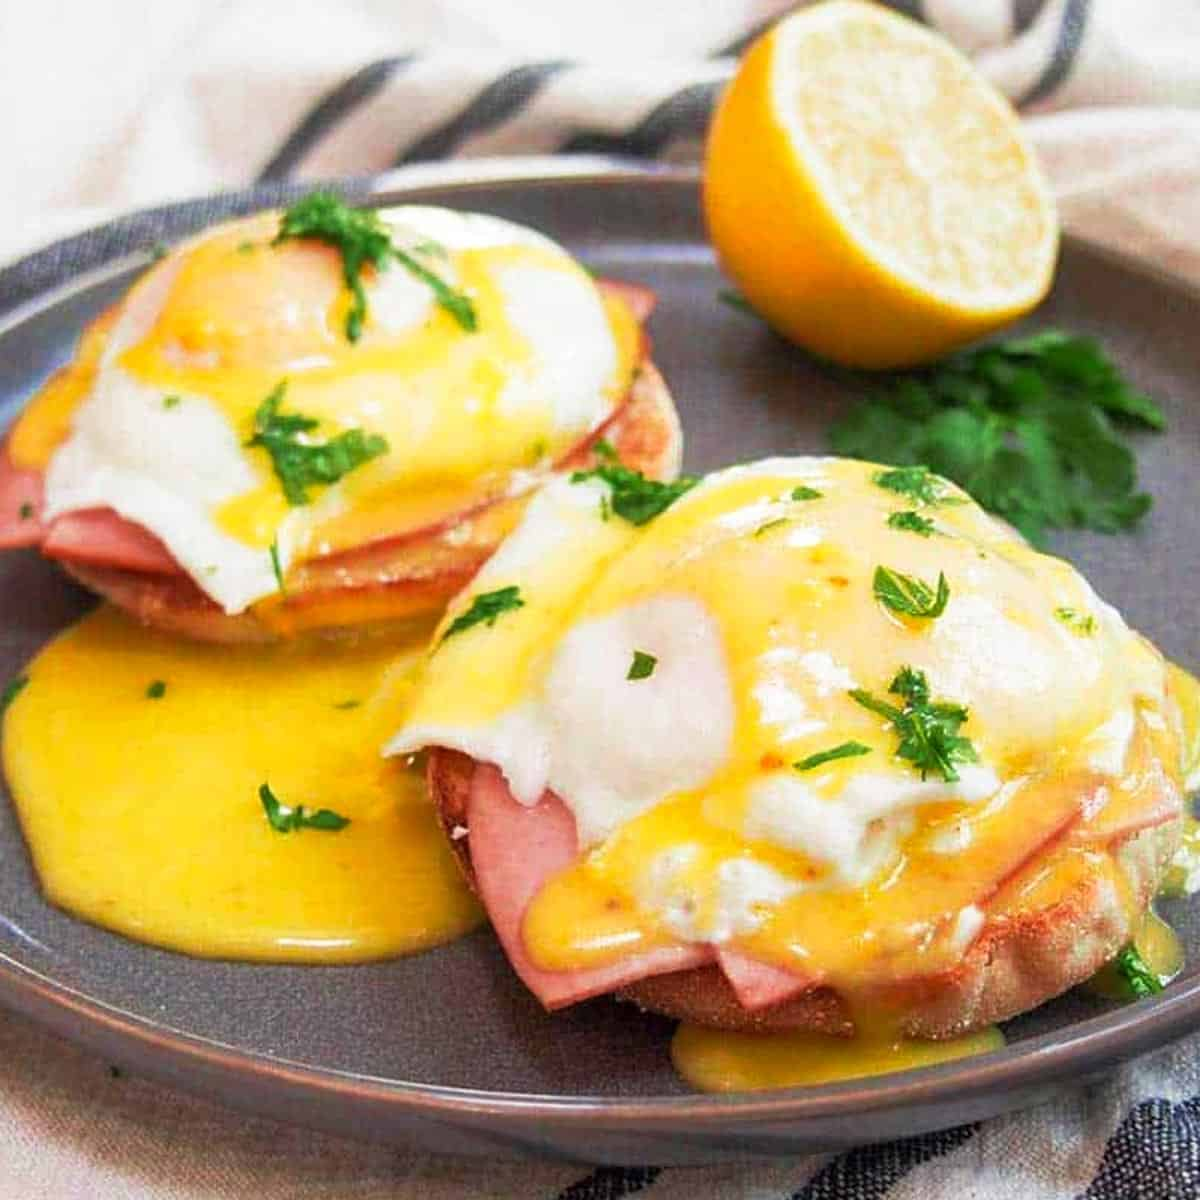 Eggs benedict on a plate - how to poach an egg